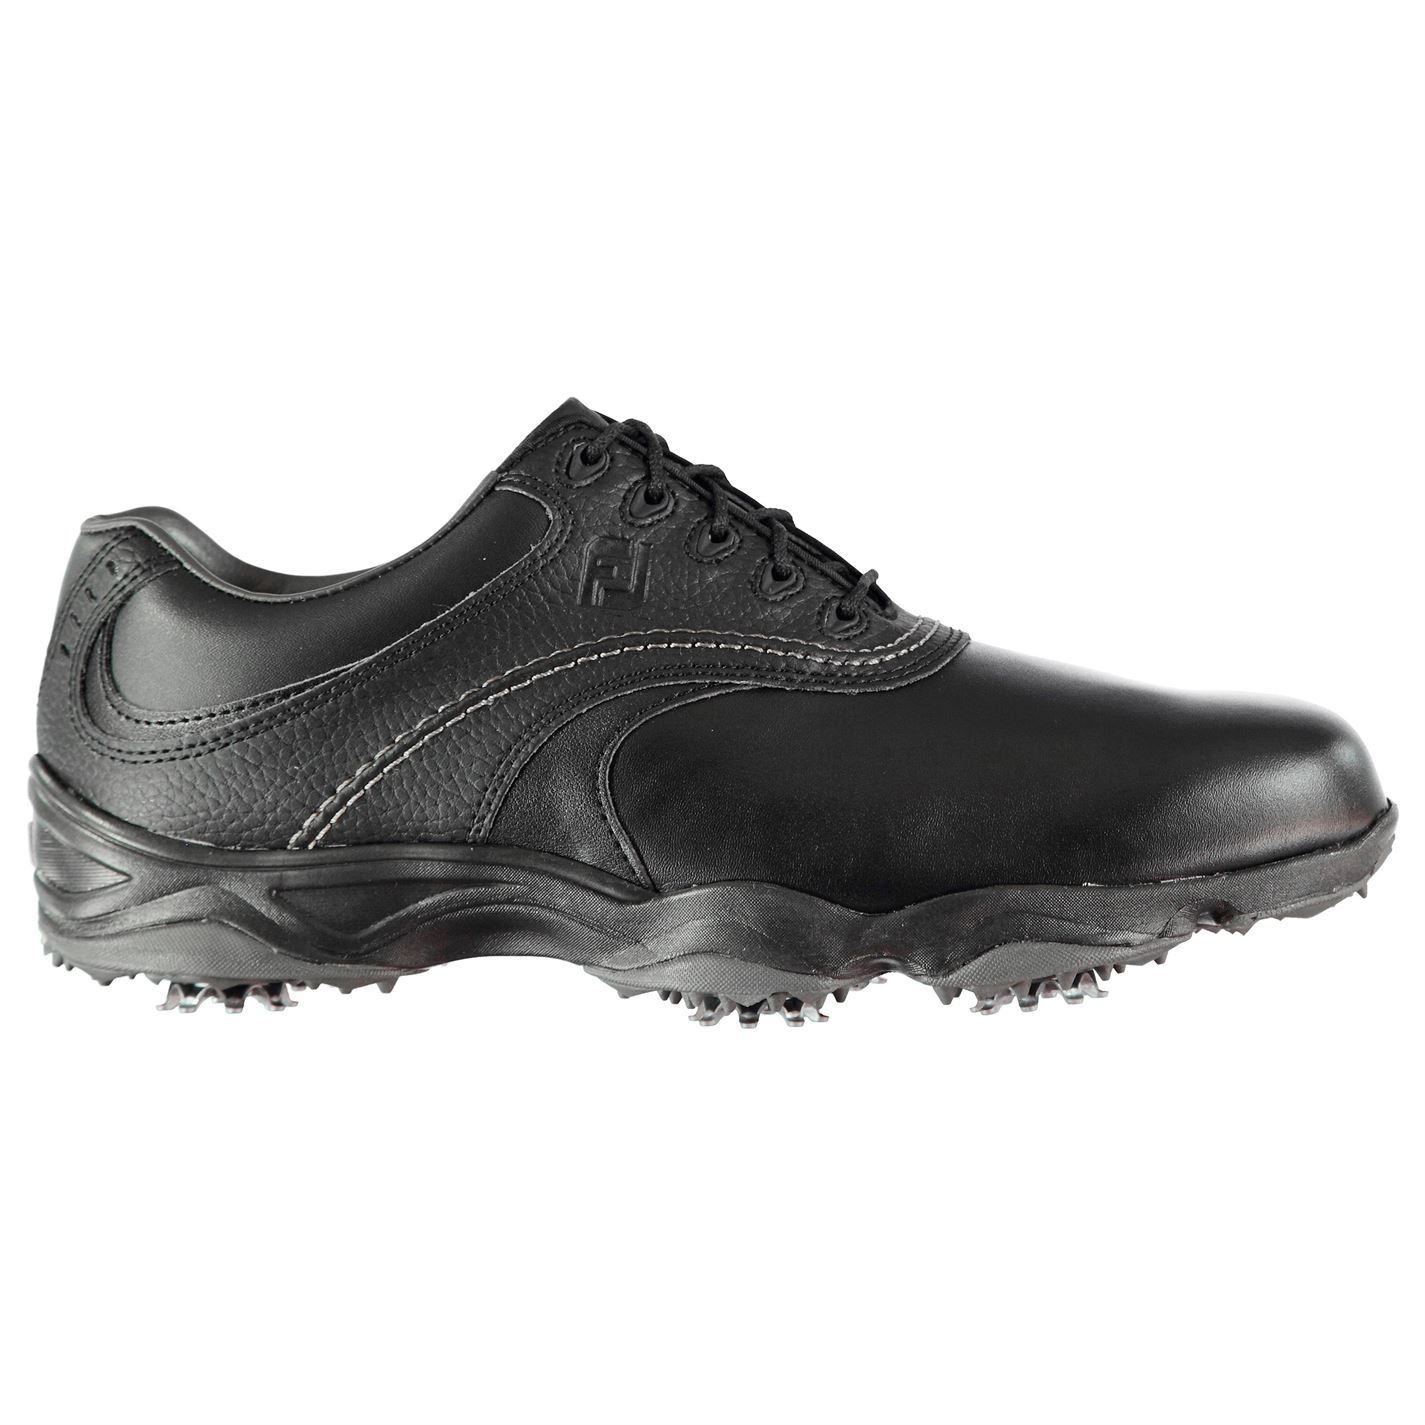 Footjoy-Originals-Golf-Shoes-Mens-Spikes-Footwear thumbnail 8